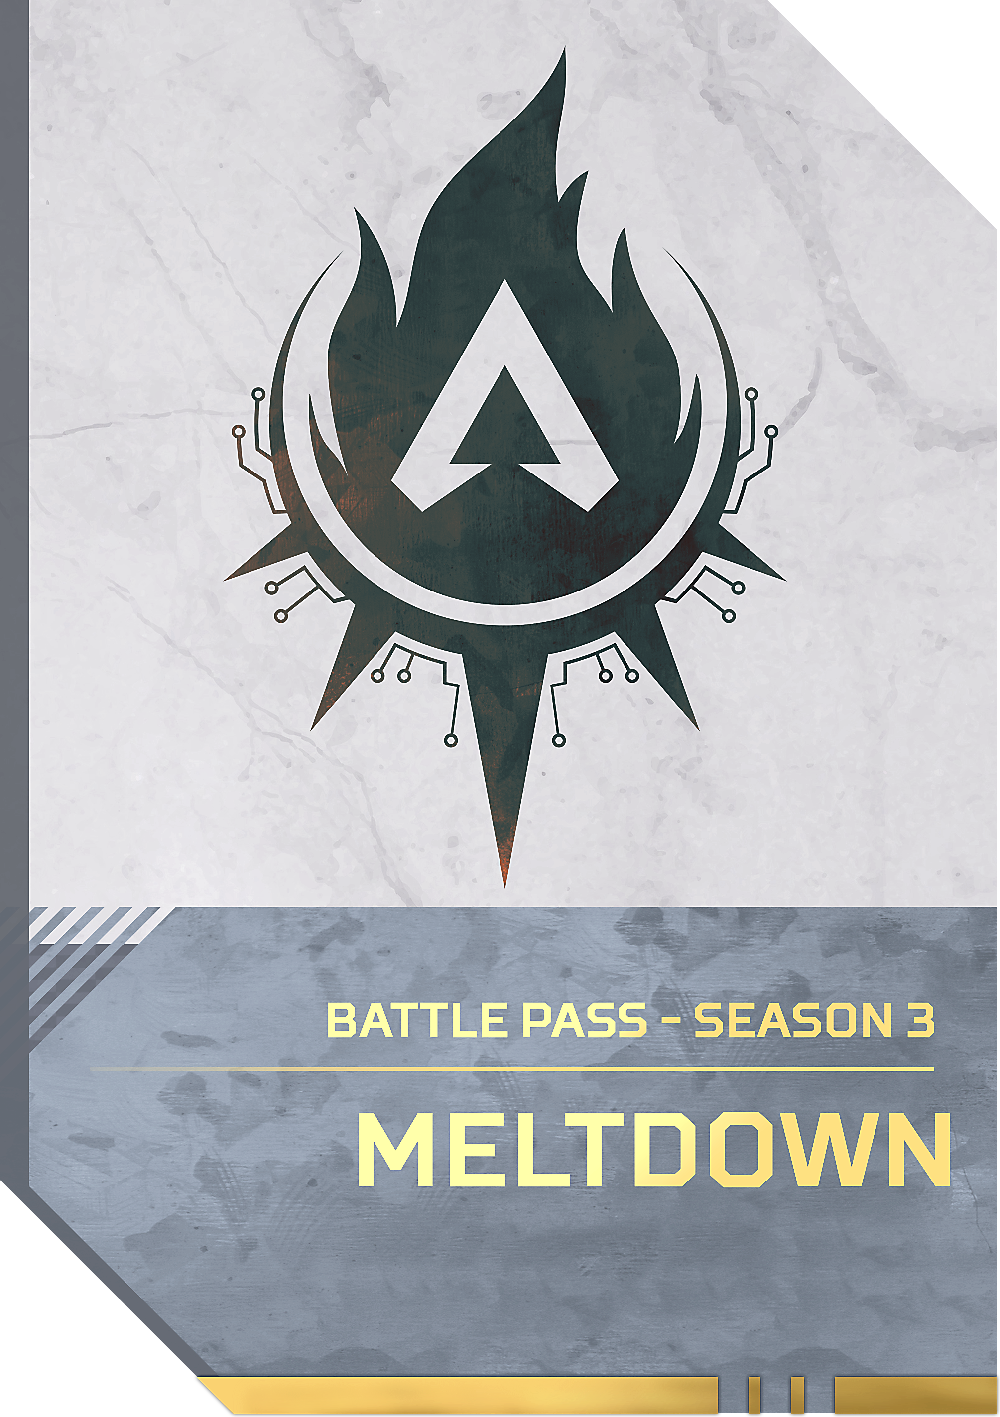 Apex Legends - Battle Pass Key Art